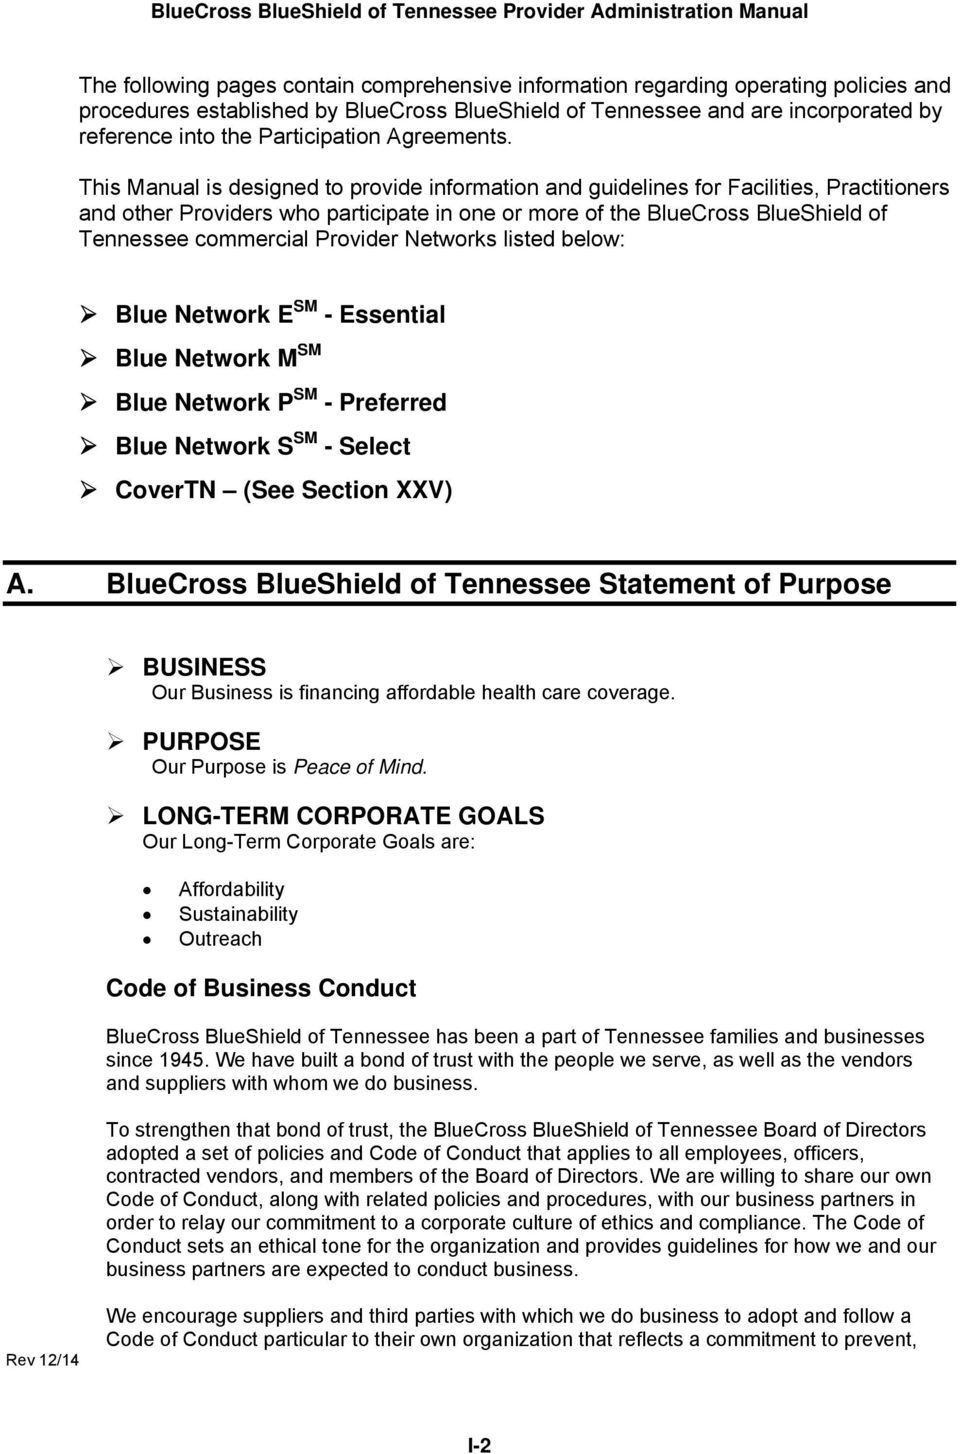 This Manual is designed to provide information and guidelines for Facilities, Practitioners and other Providers who participate in one or more of the BlueCross BlueShield of Tennessee commercial